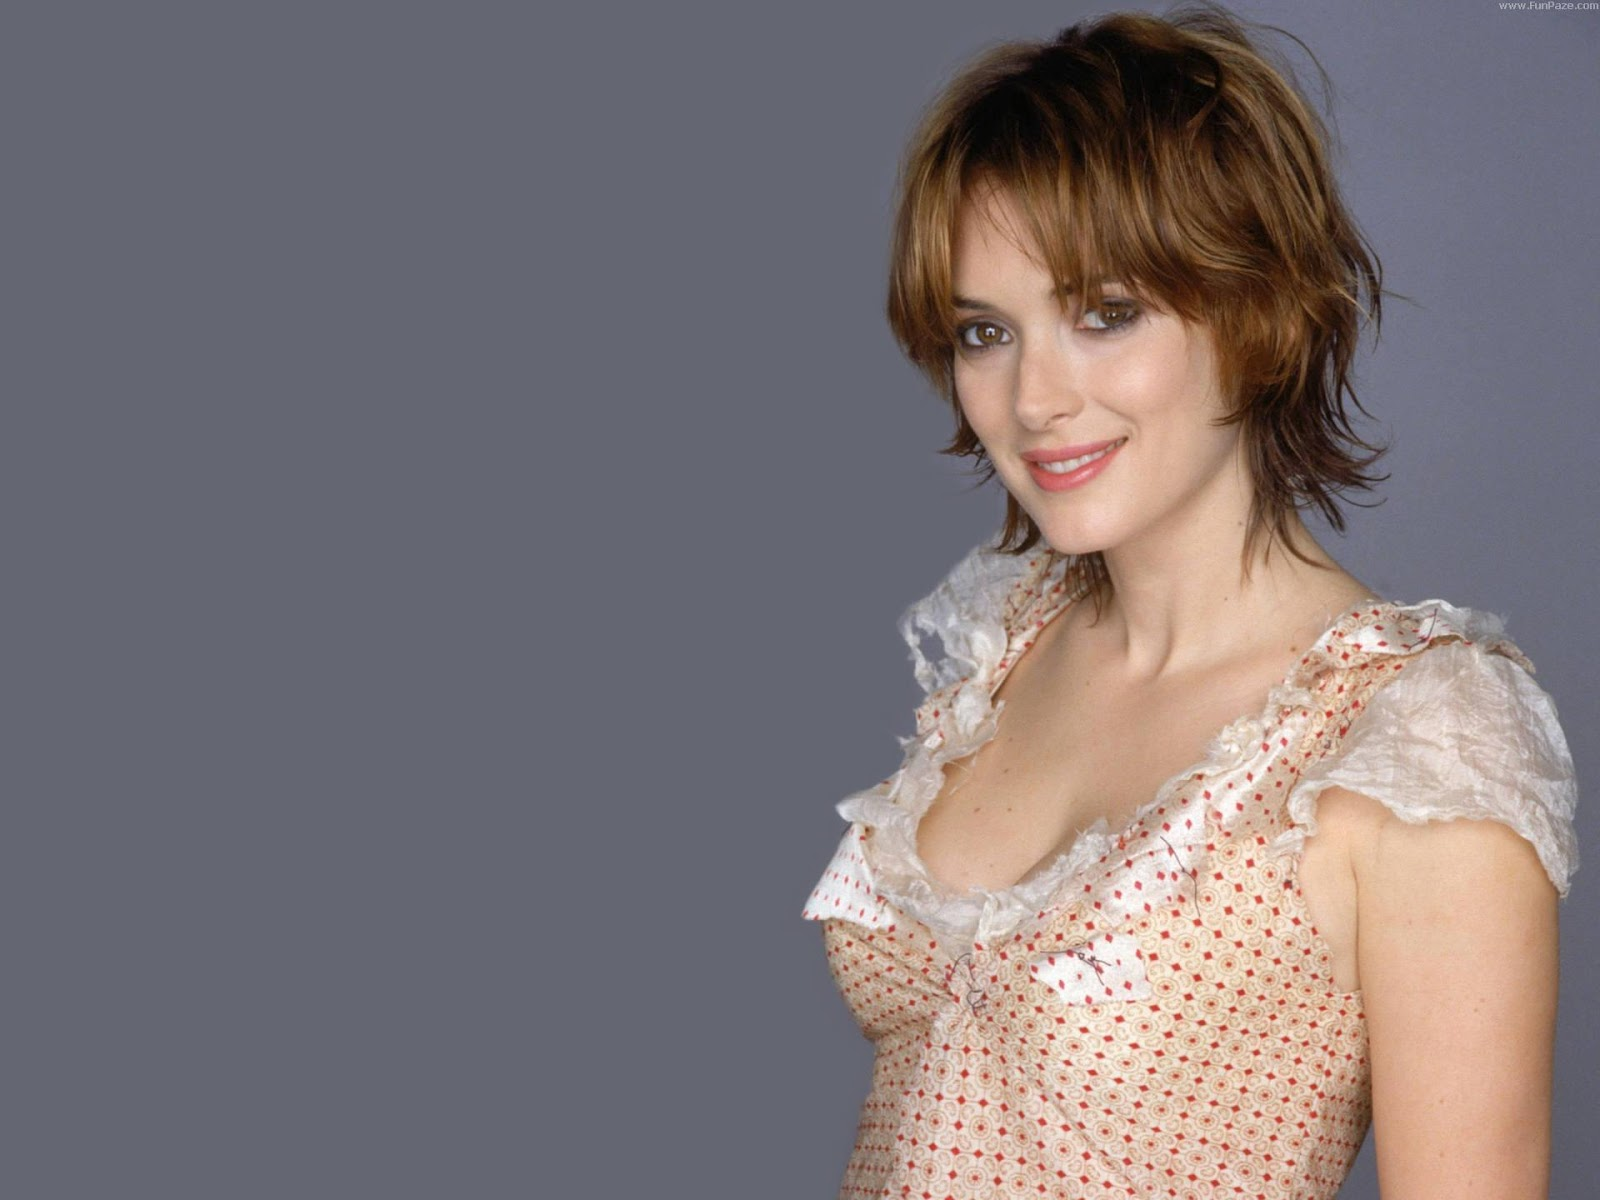 1600x1200 - Winona Ryder Wallpapers 13